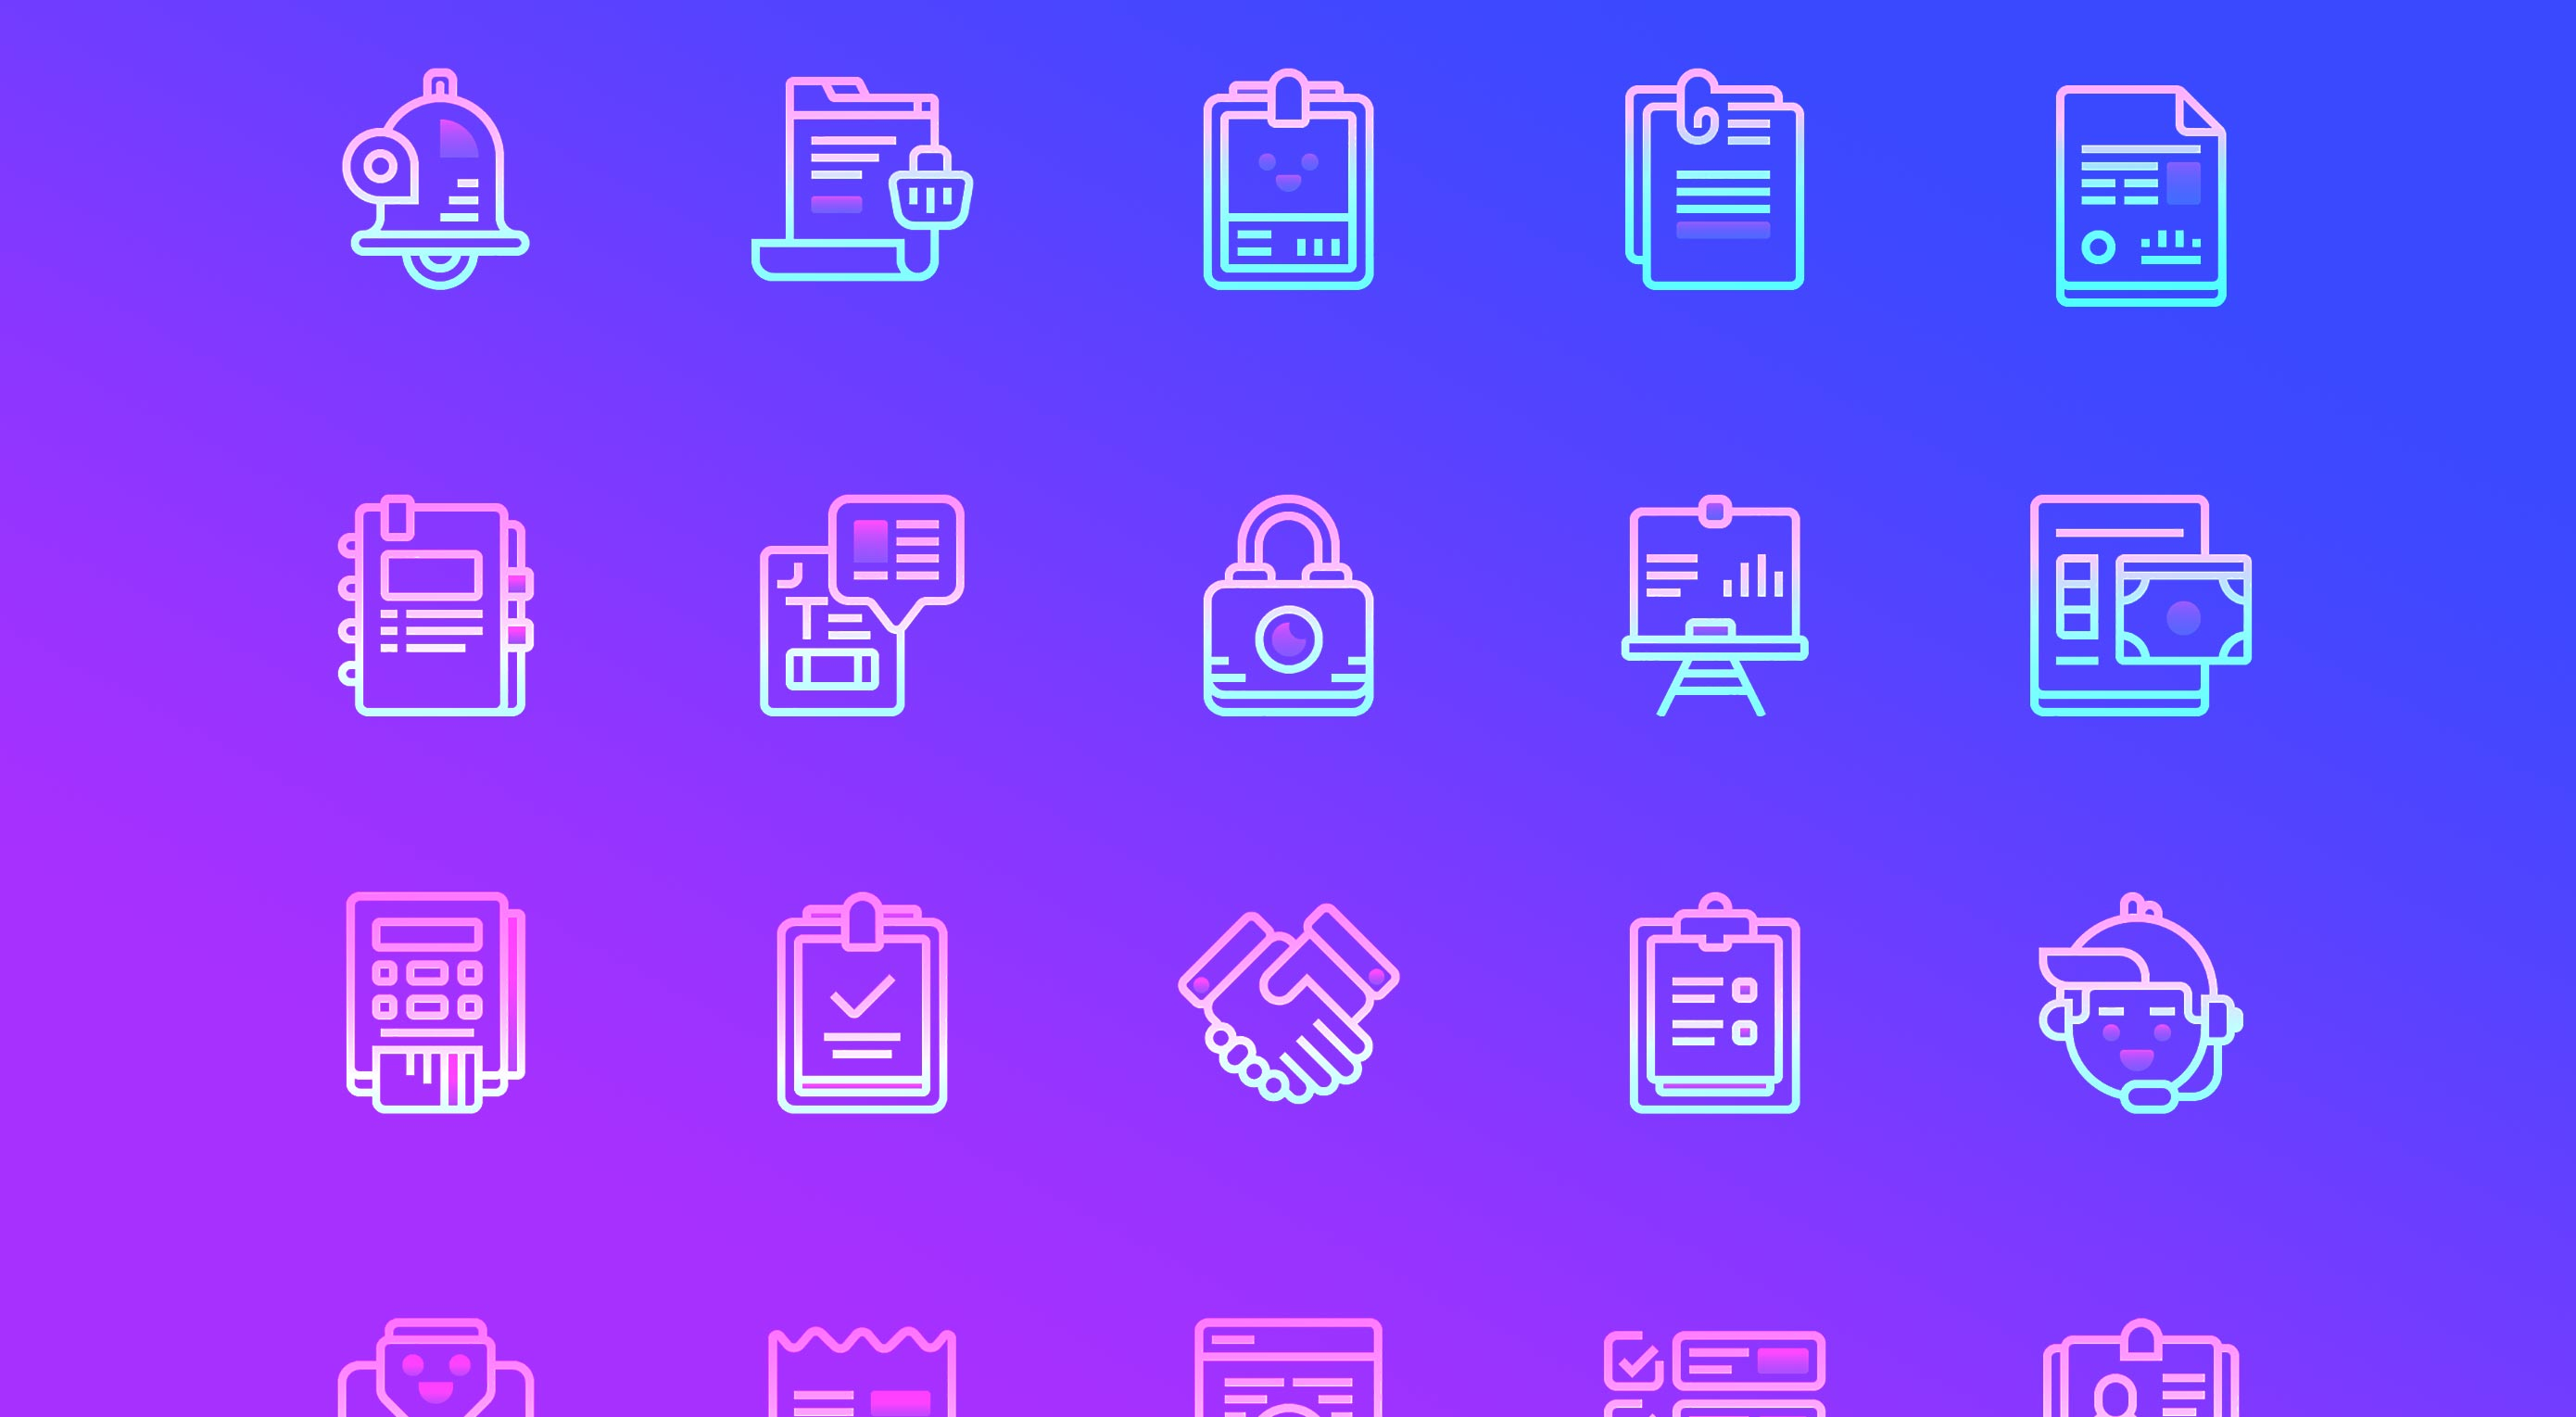 Free Download: 48 Nolan Business Icons by Icons8